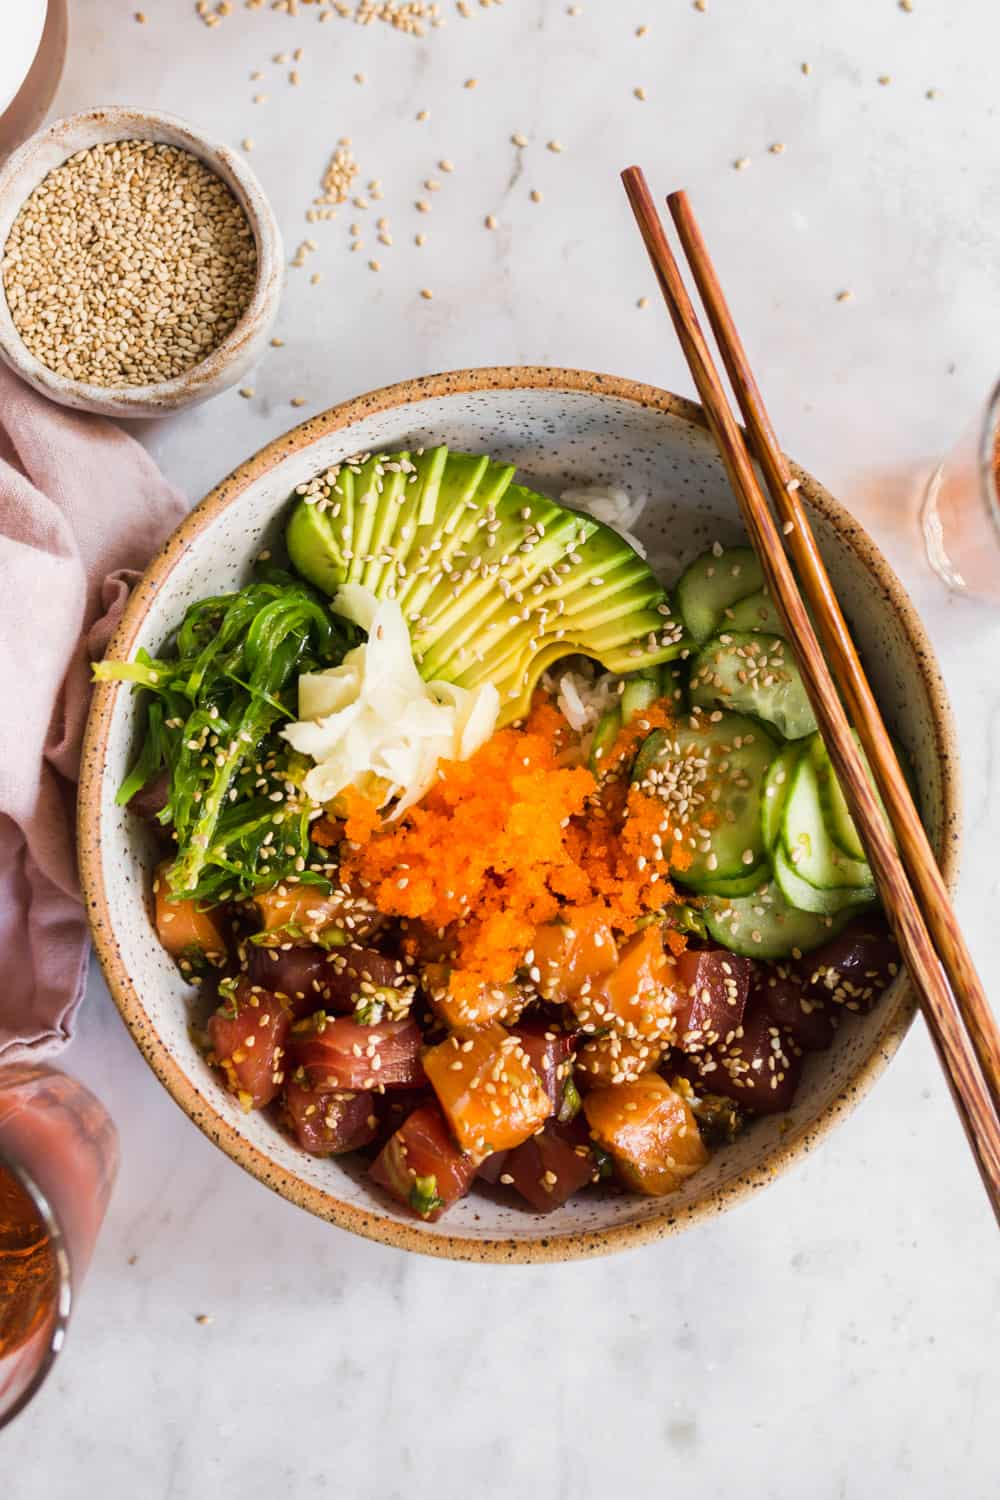 Overhead view of poke bowls with avocado, cucumber salad, raw fish, masago, ginger, and seaweed salad. Chopsticks and sesame seeds on the side.